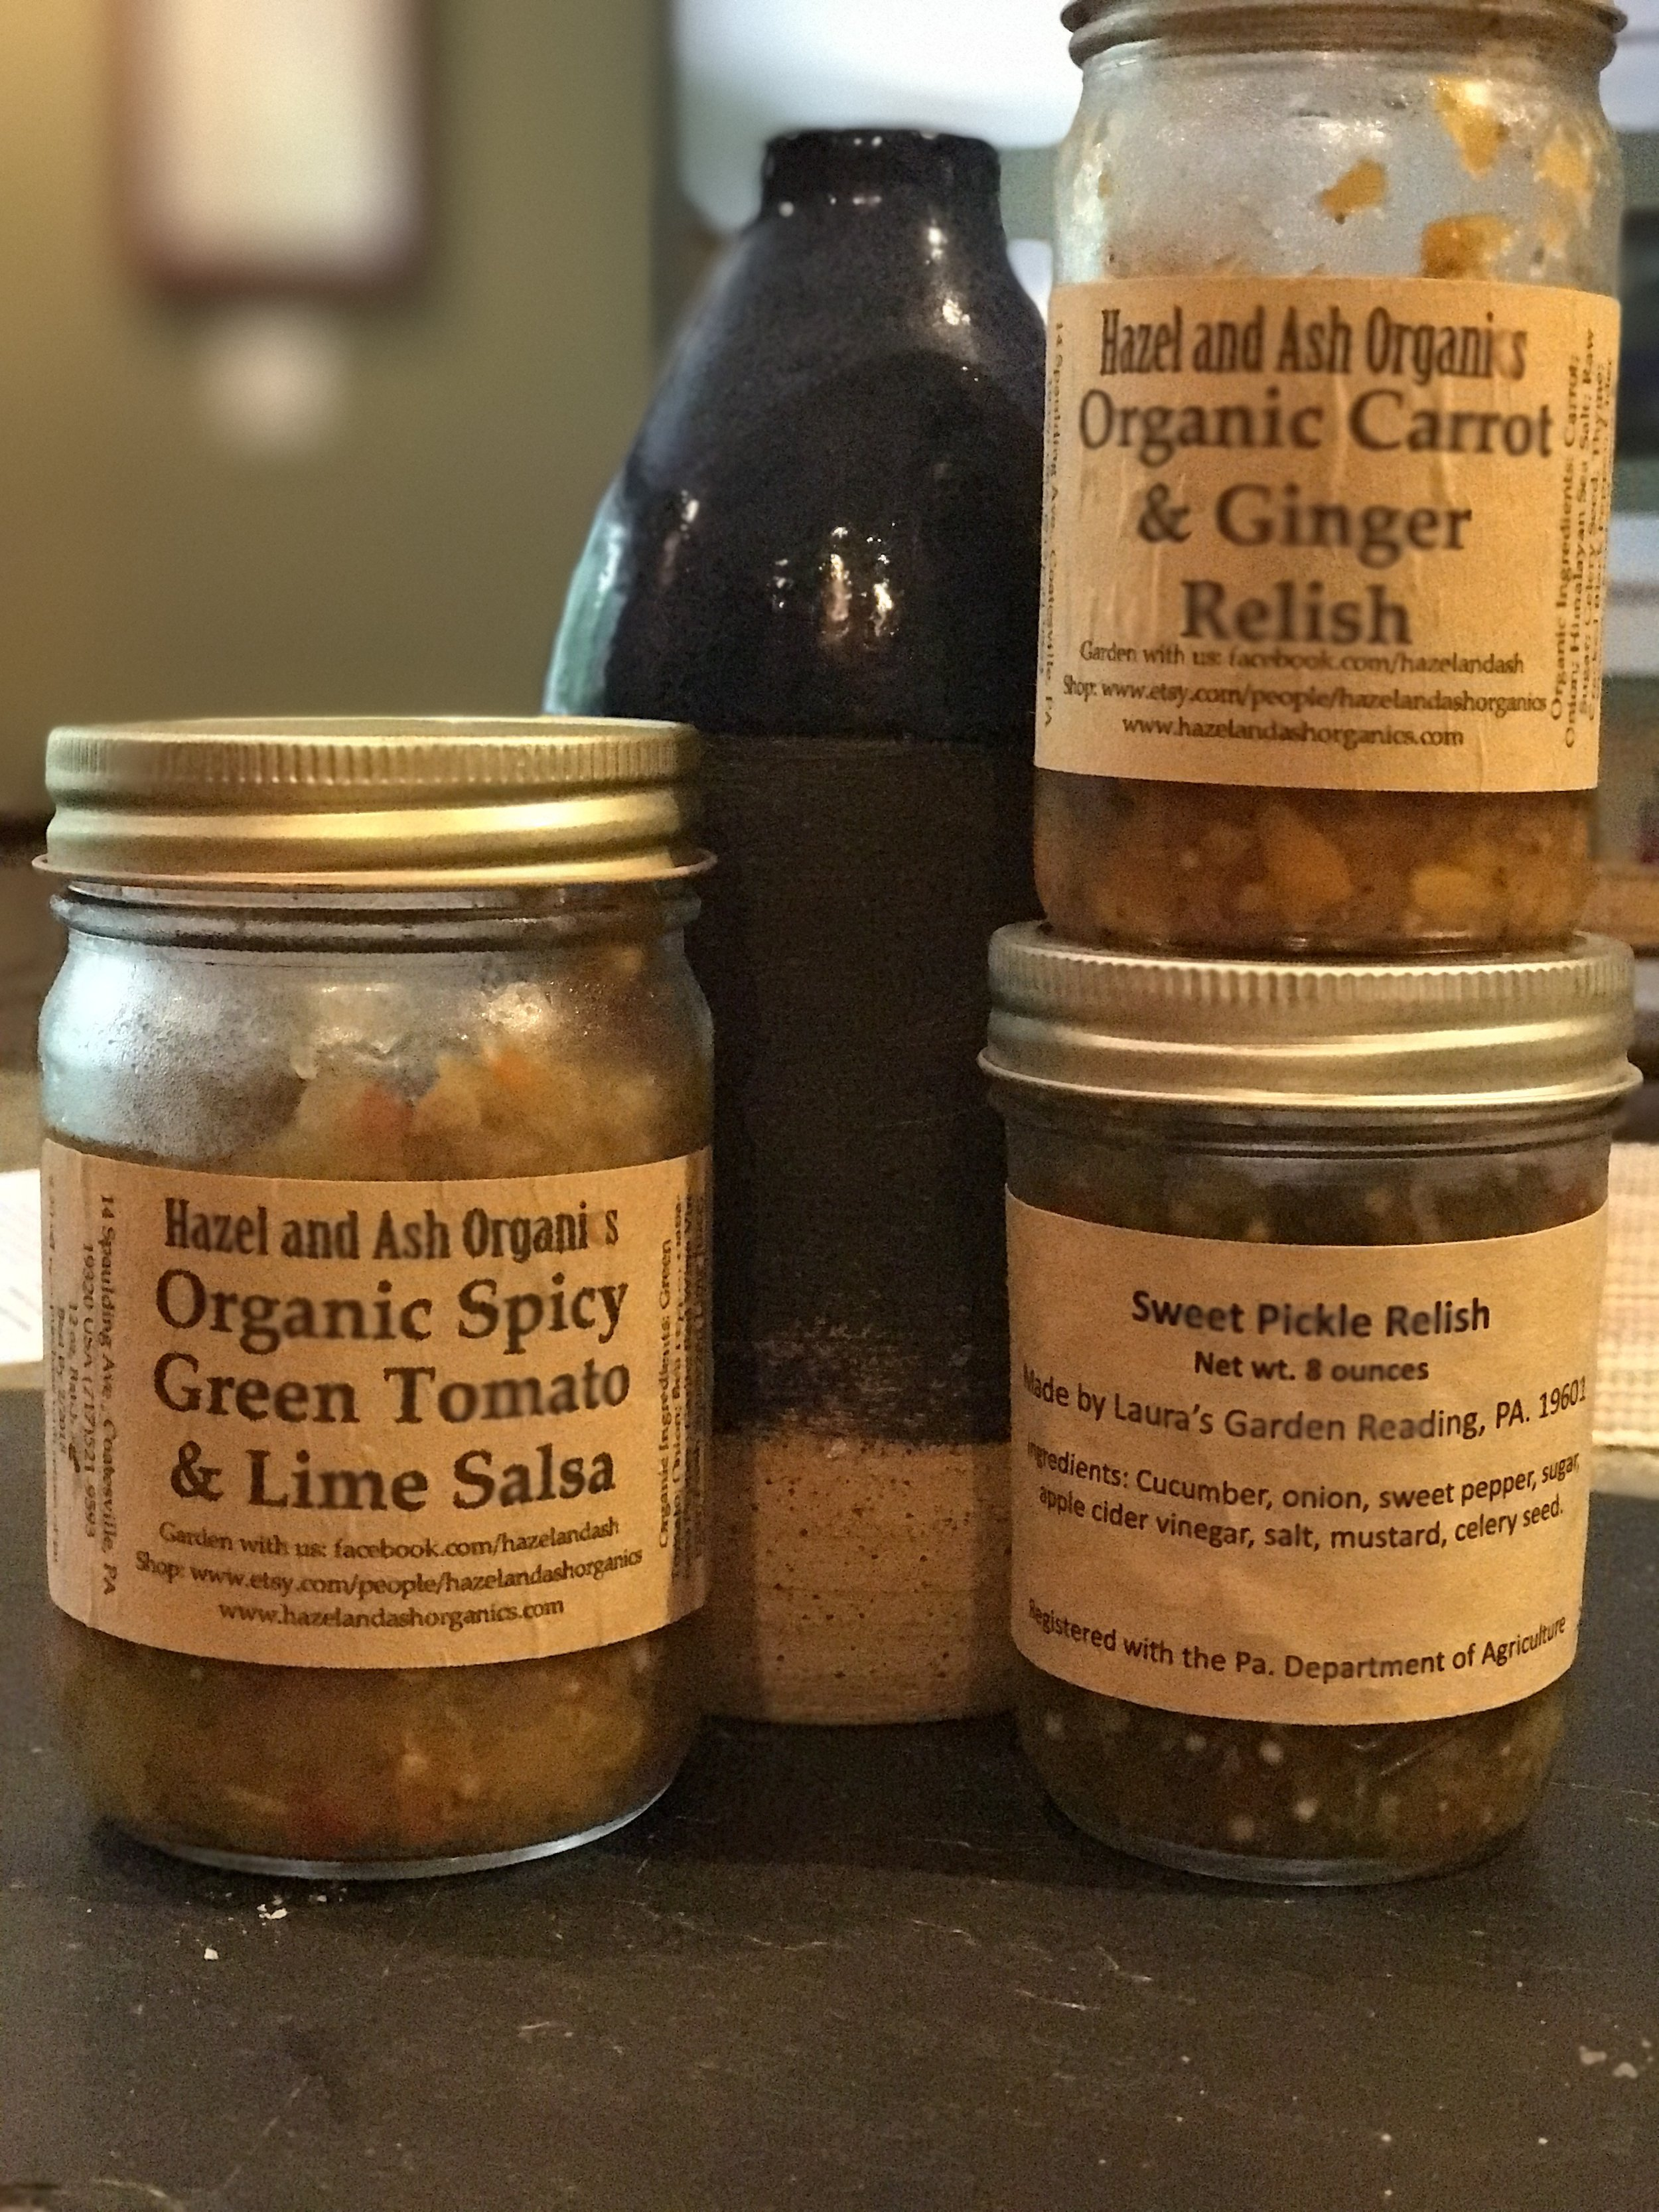 Add-ins: - Consider adding some relishes or salsa from Hazel & Ash or Laura's Garden